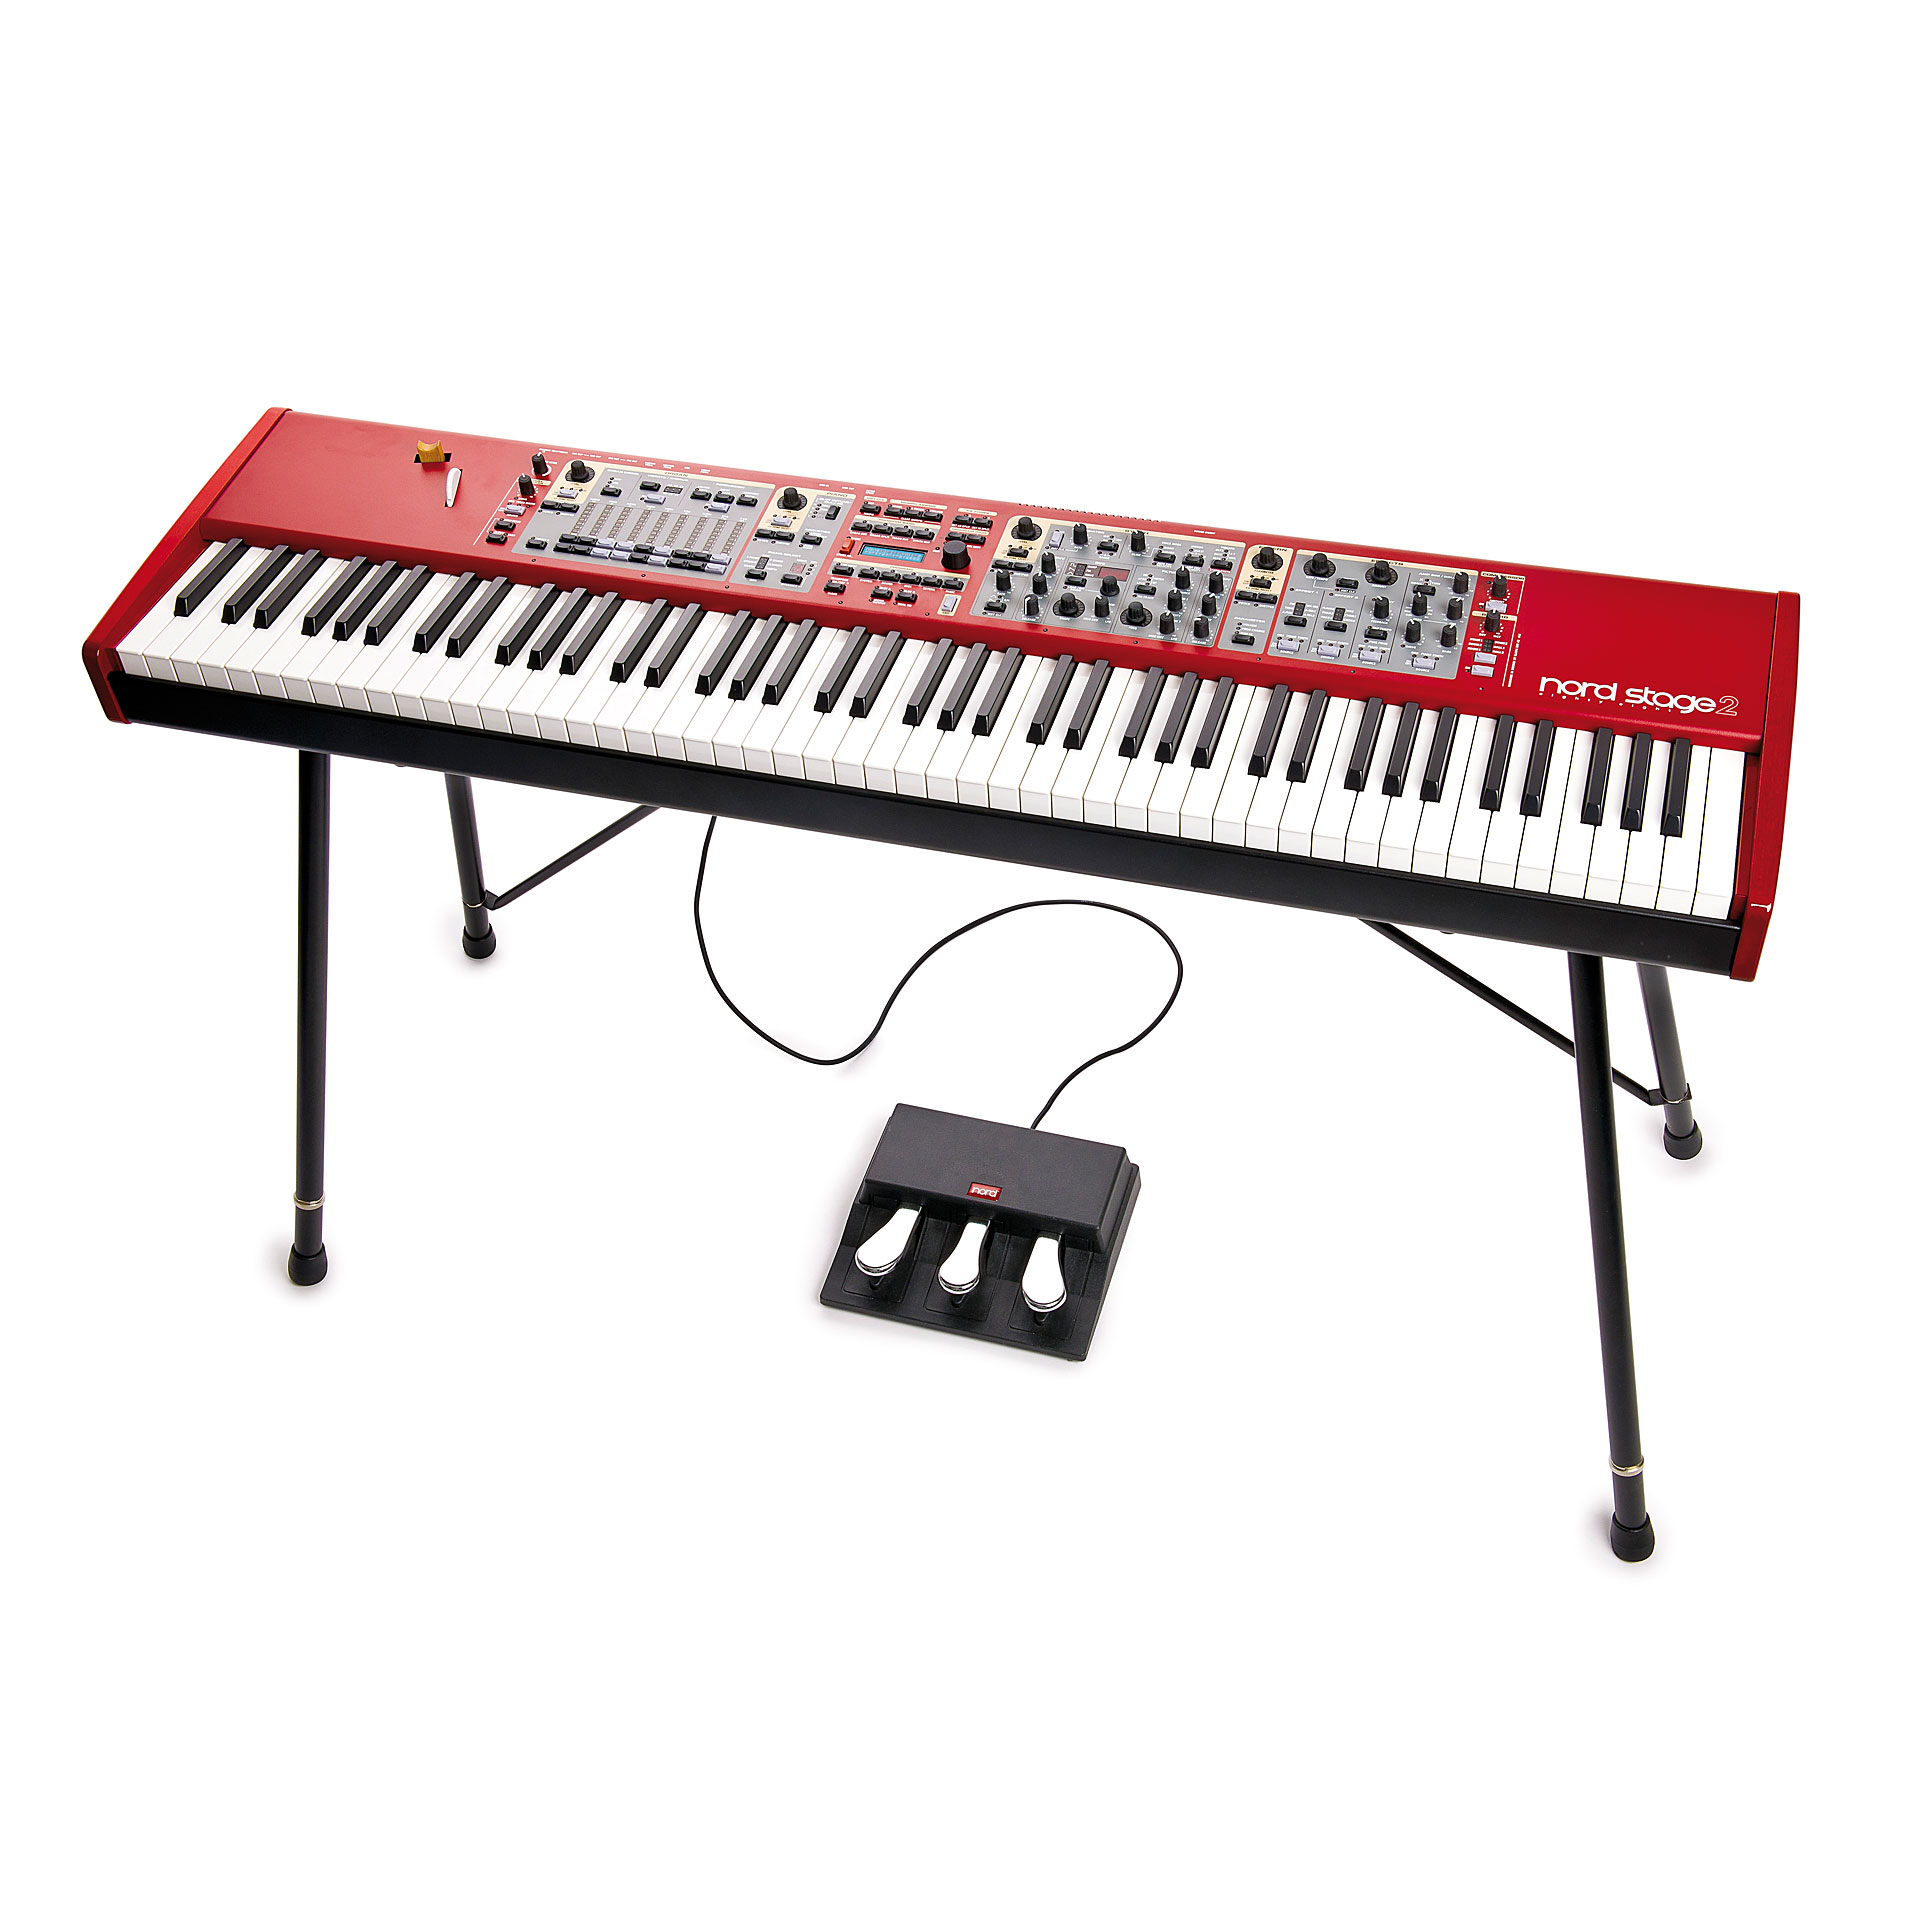 clavia nord stage 2 88 keys stage piano. Black Bedroom Furniture Sets. Home Design Ideas